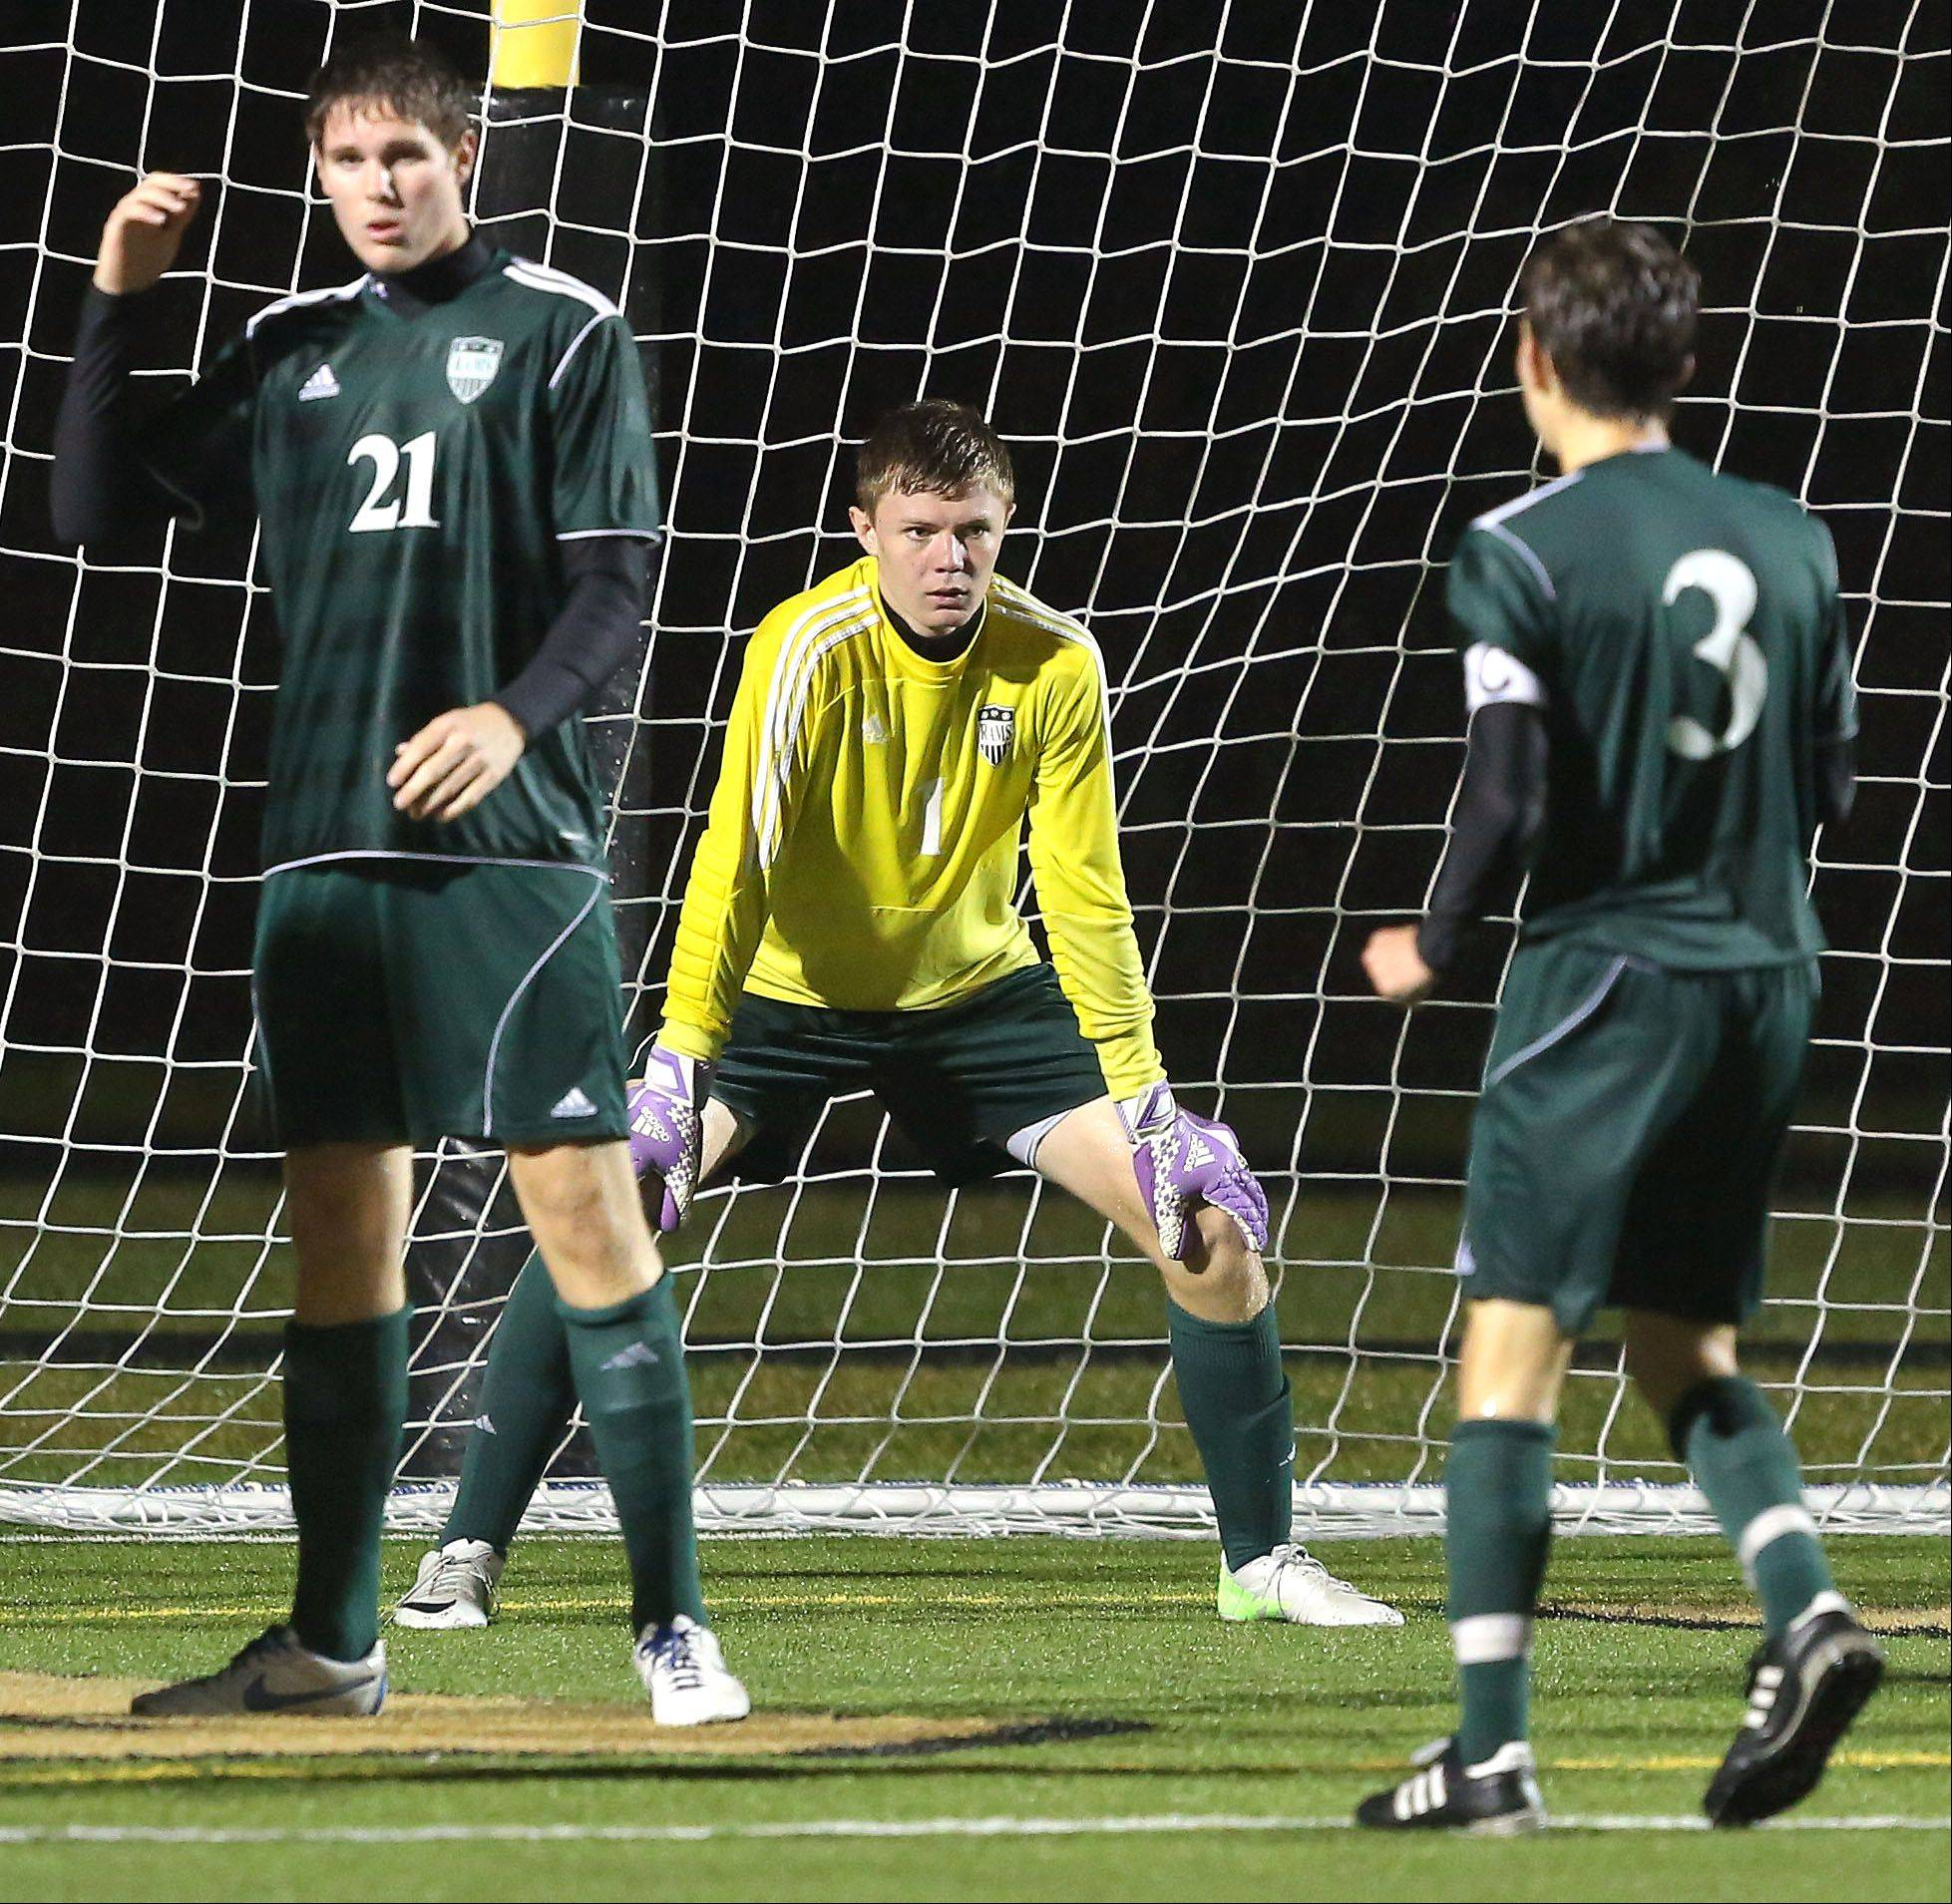 Grayslake Central players, from left, Jacob Swearingen, Steve Anderson and Isaac Longenecker, looked stunned after letting in a goal off a throw-in during their Class 3A sectional semifinal against Antioch Wednesday at Grayslake North High School.